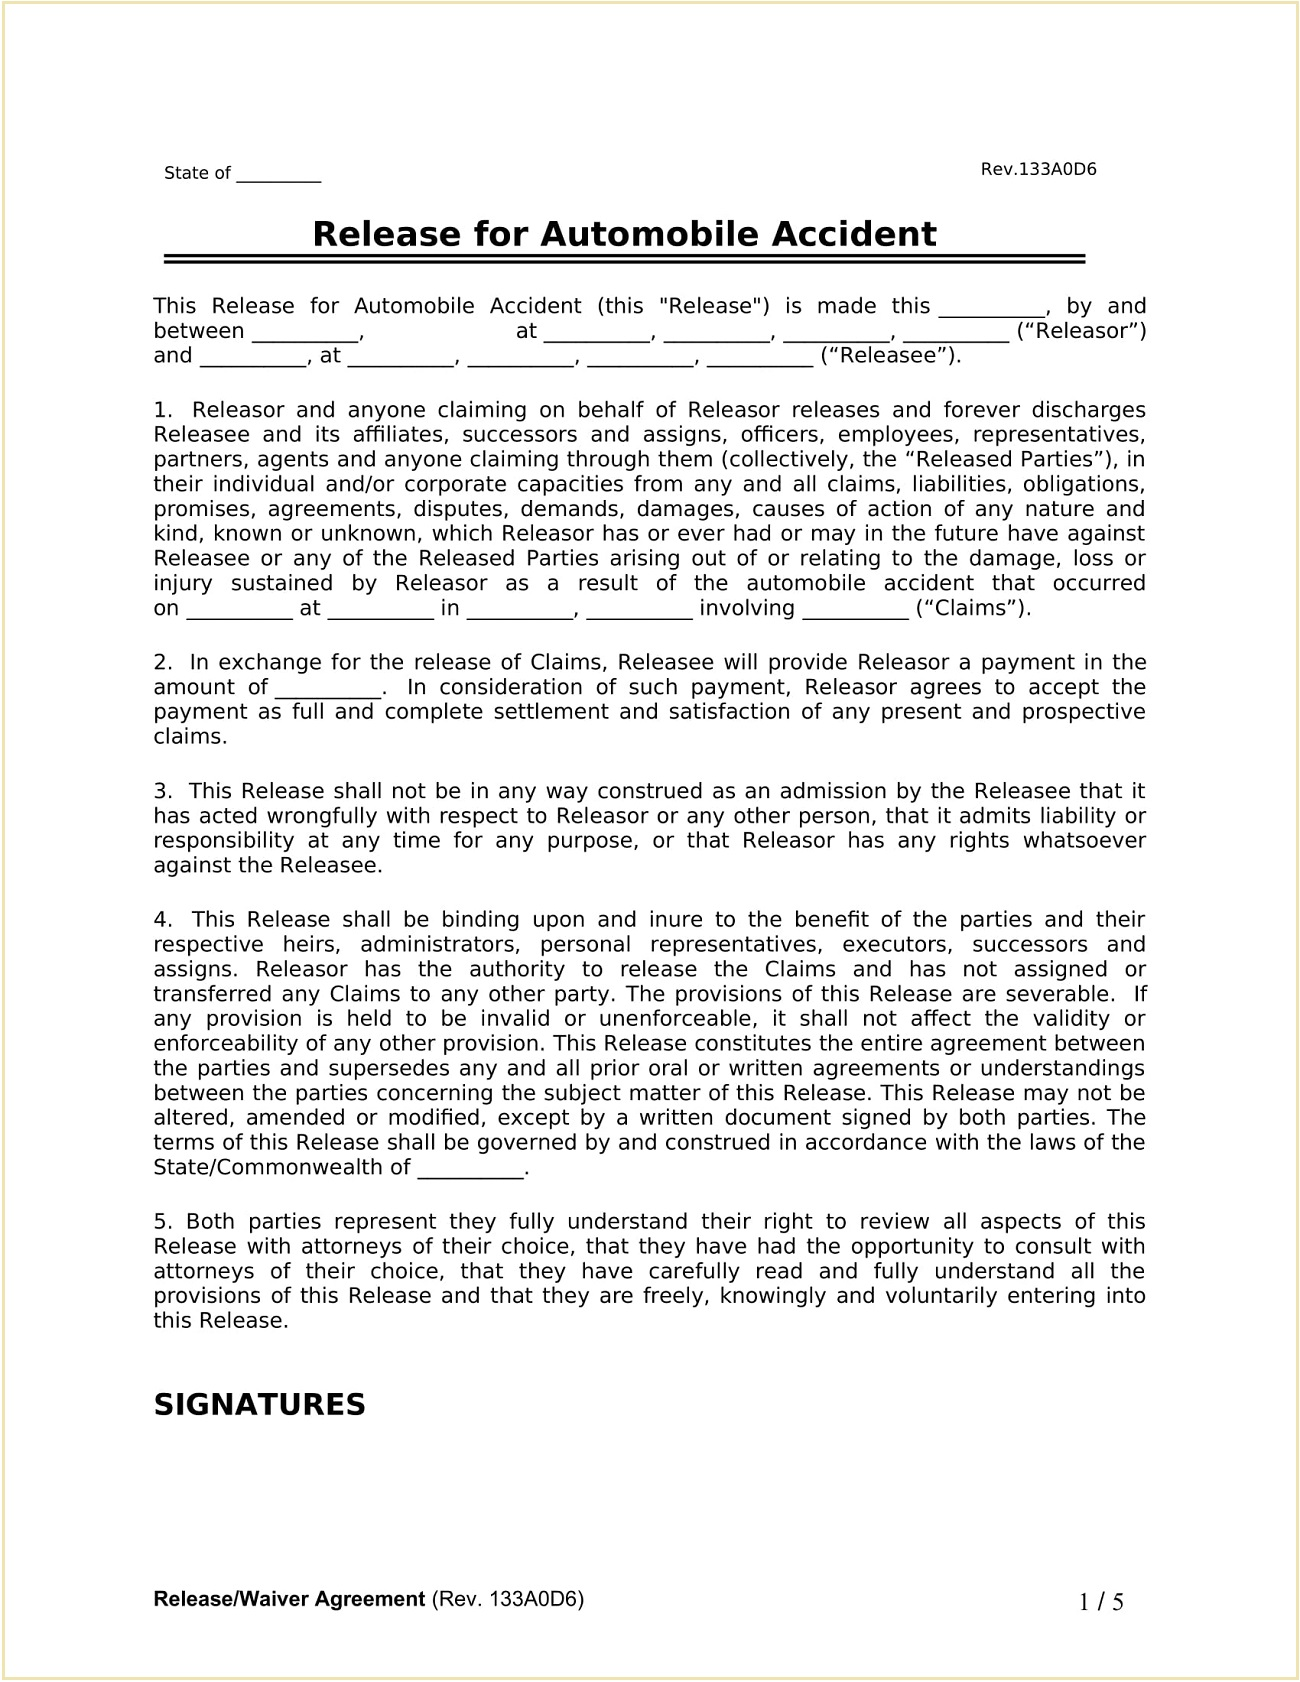 Auto Accident Release Waiver Form Template Word